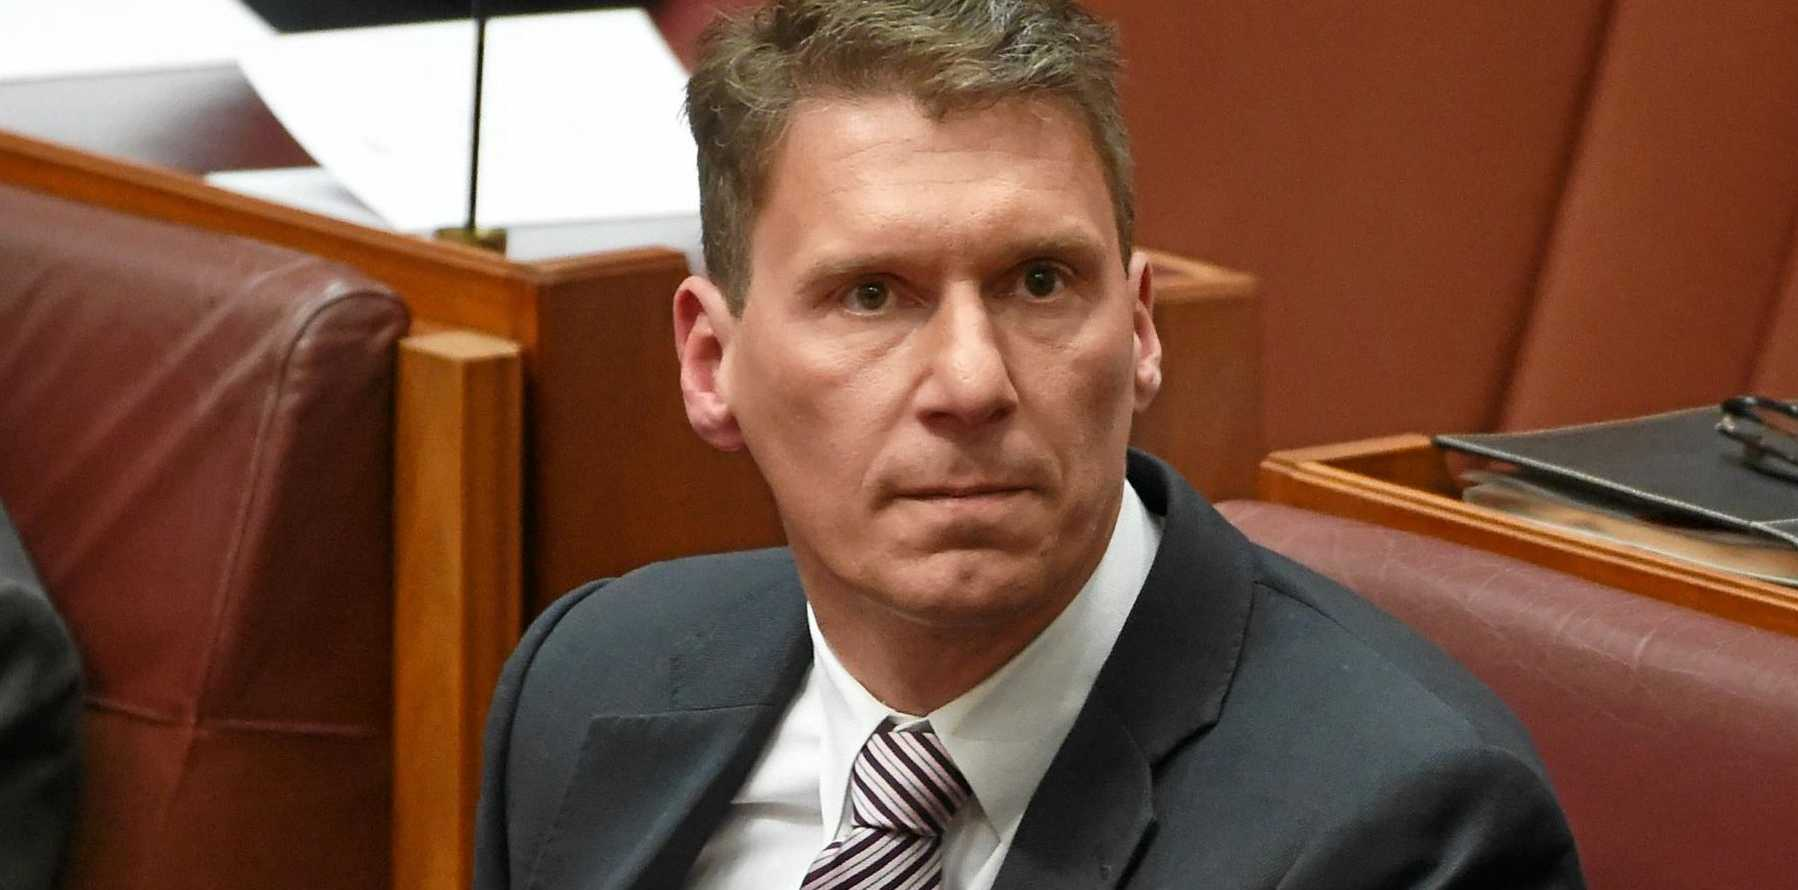 Liberal Senator Cory Bernadi is leading the charge to change the racial discrimination laws.